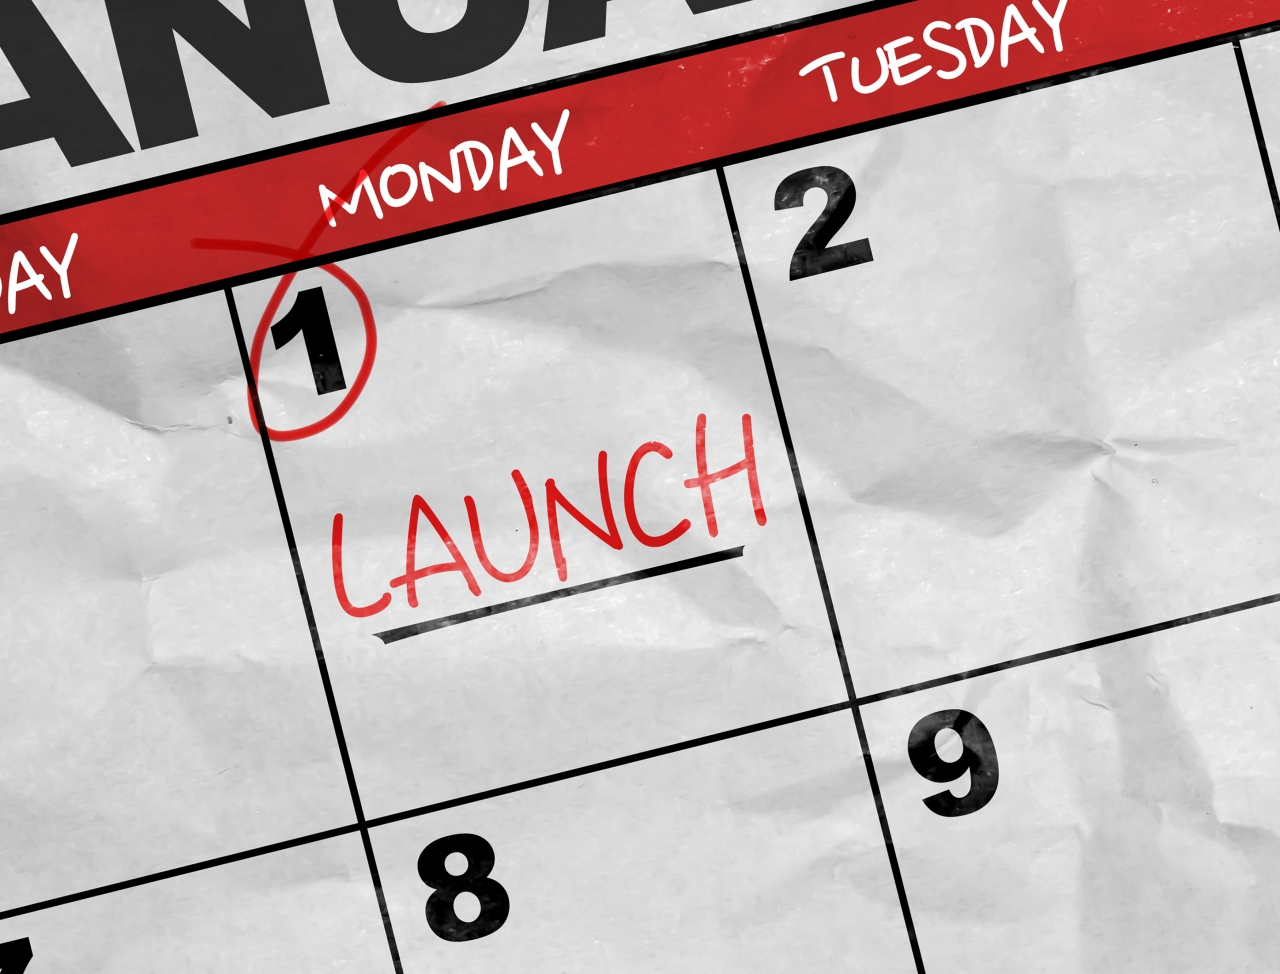 Send your next product launch off the shelf with a winning PR strategy